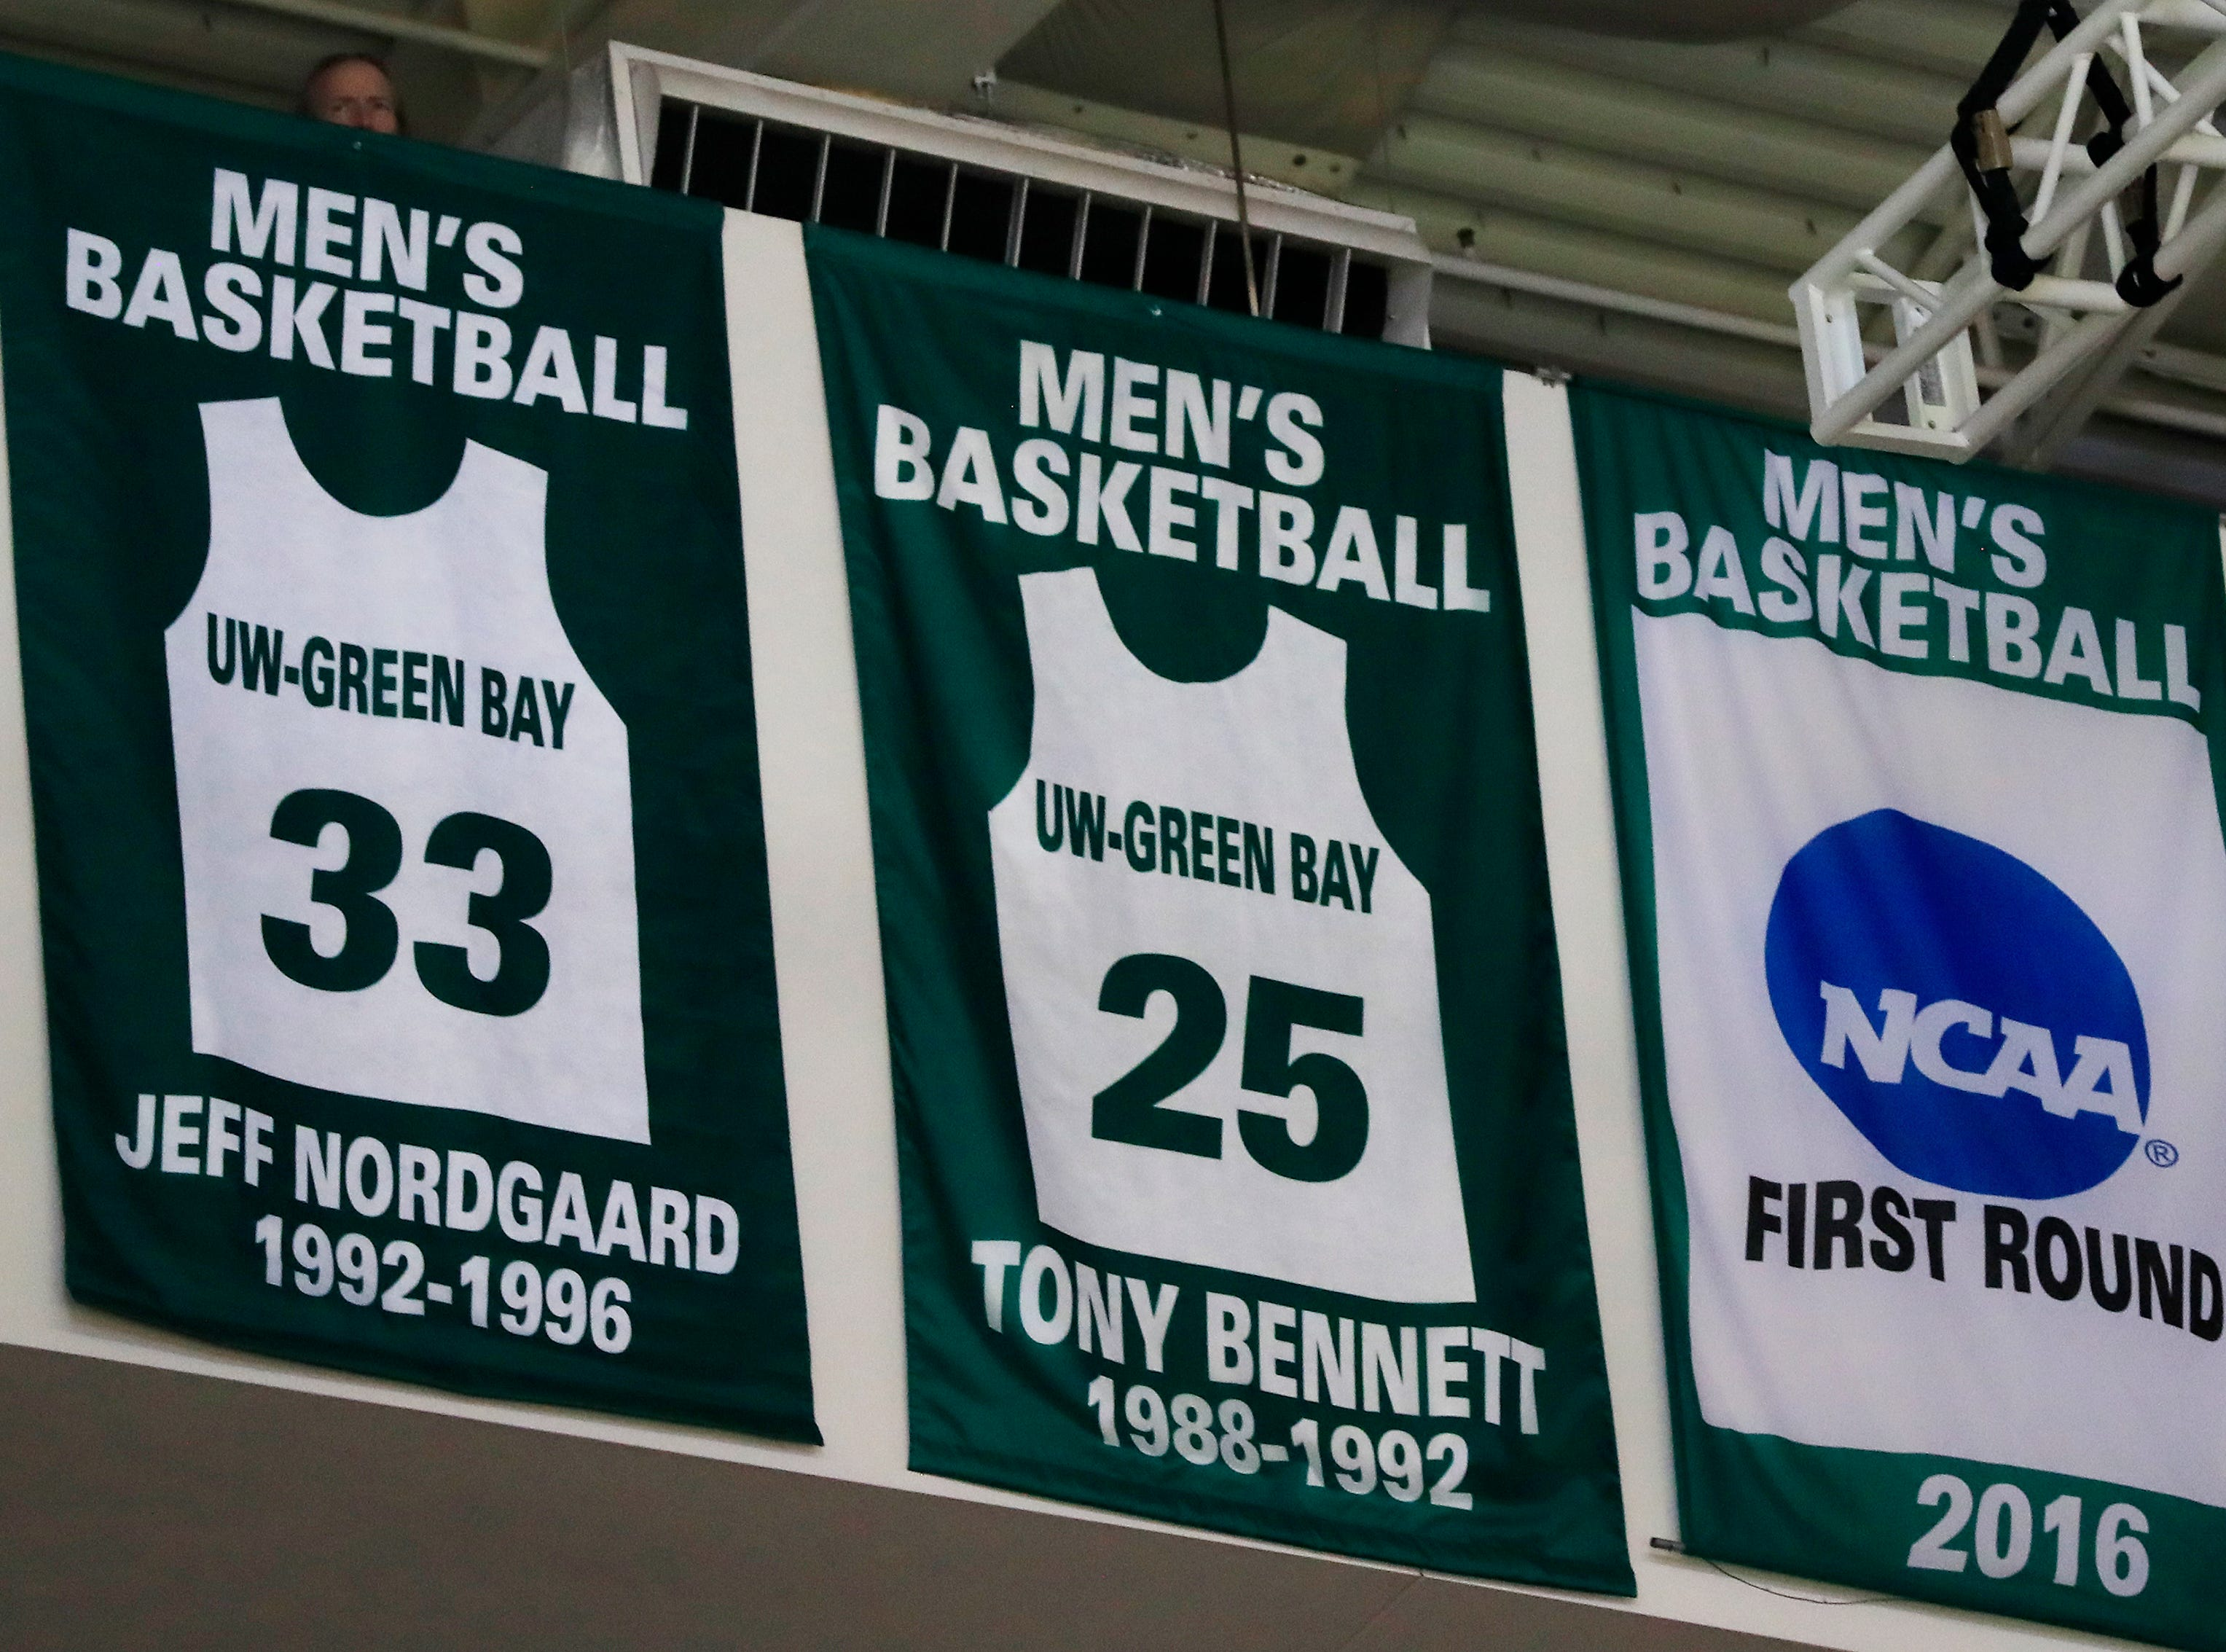 Former UW-Green Bay basketball player Jeff Nordgaard jersey was retired during halftime of a NCAA basketball game at the Resch Center on Saturday, December 1, 2018 in Ashwaubenon, Wis.